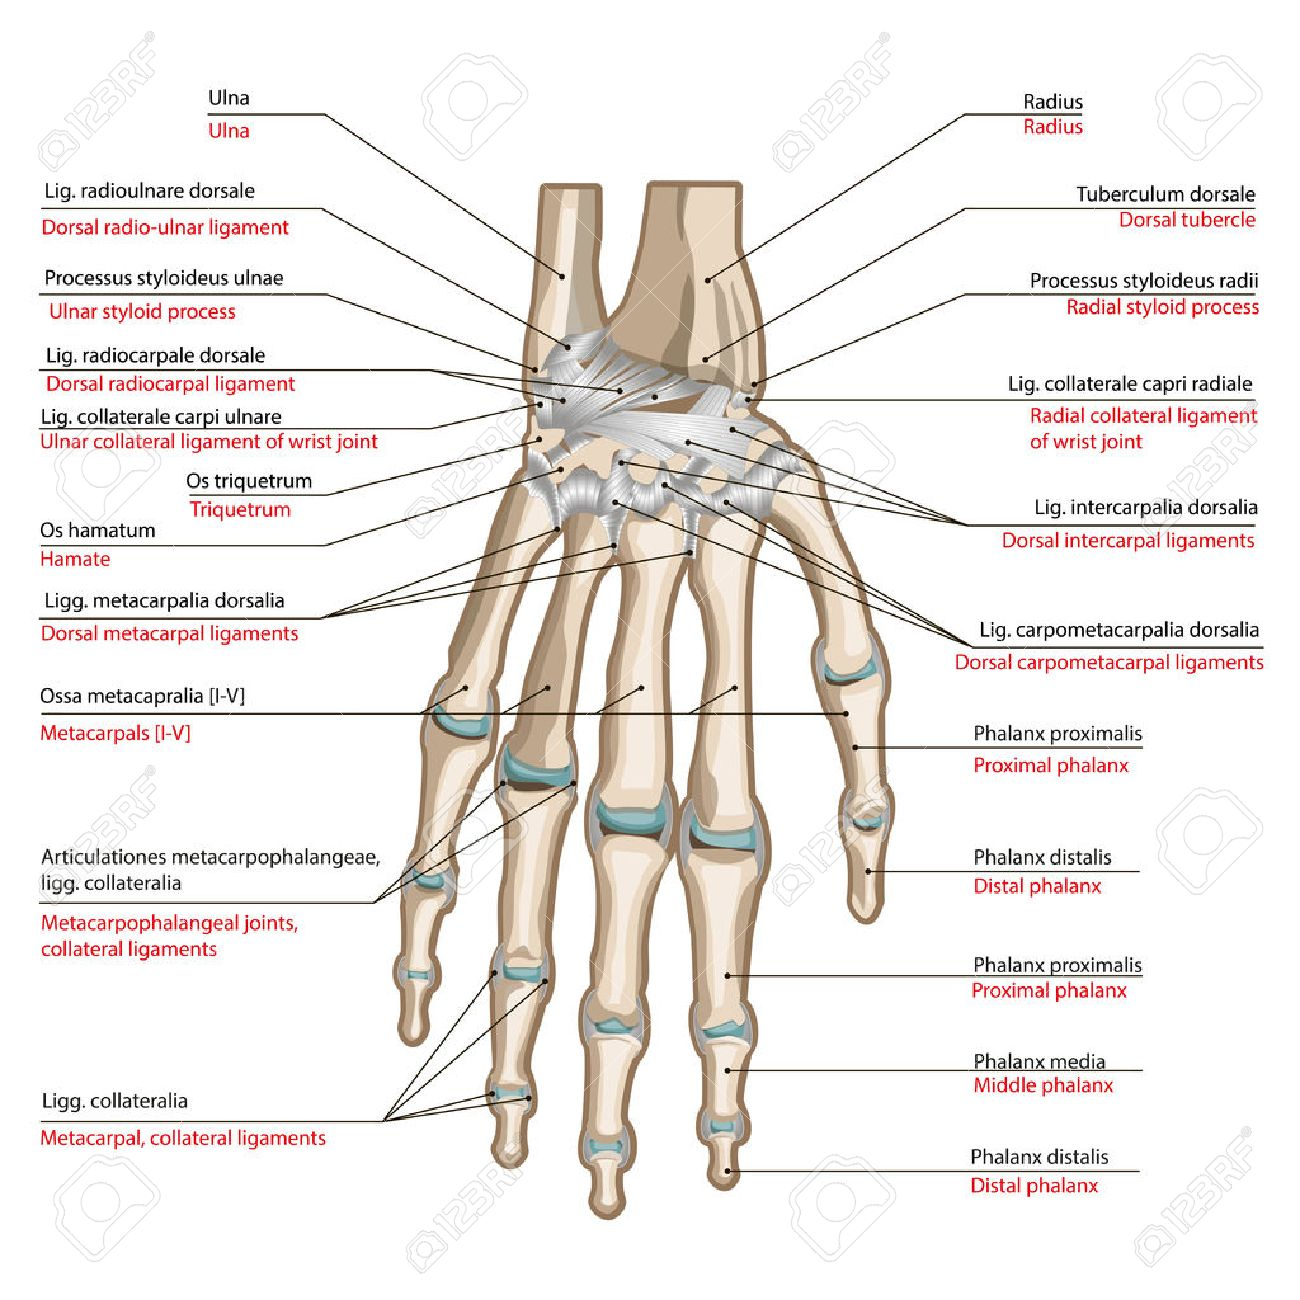 66571875 bones and ligaments of the back side of the hand medical poster hand ligament medical diagram diy enthusiasts wiring diagrams \u2022